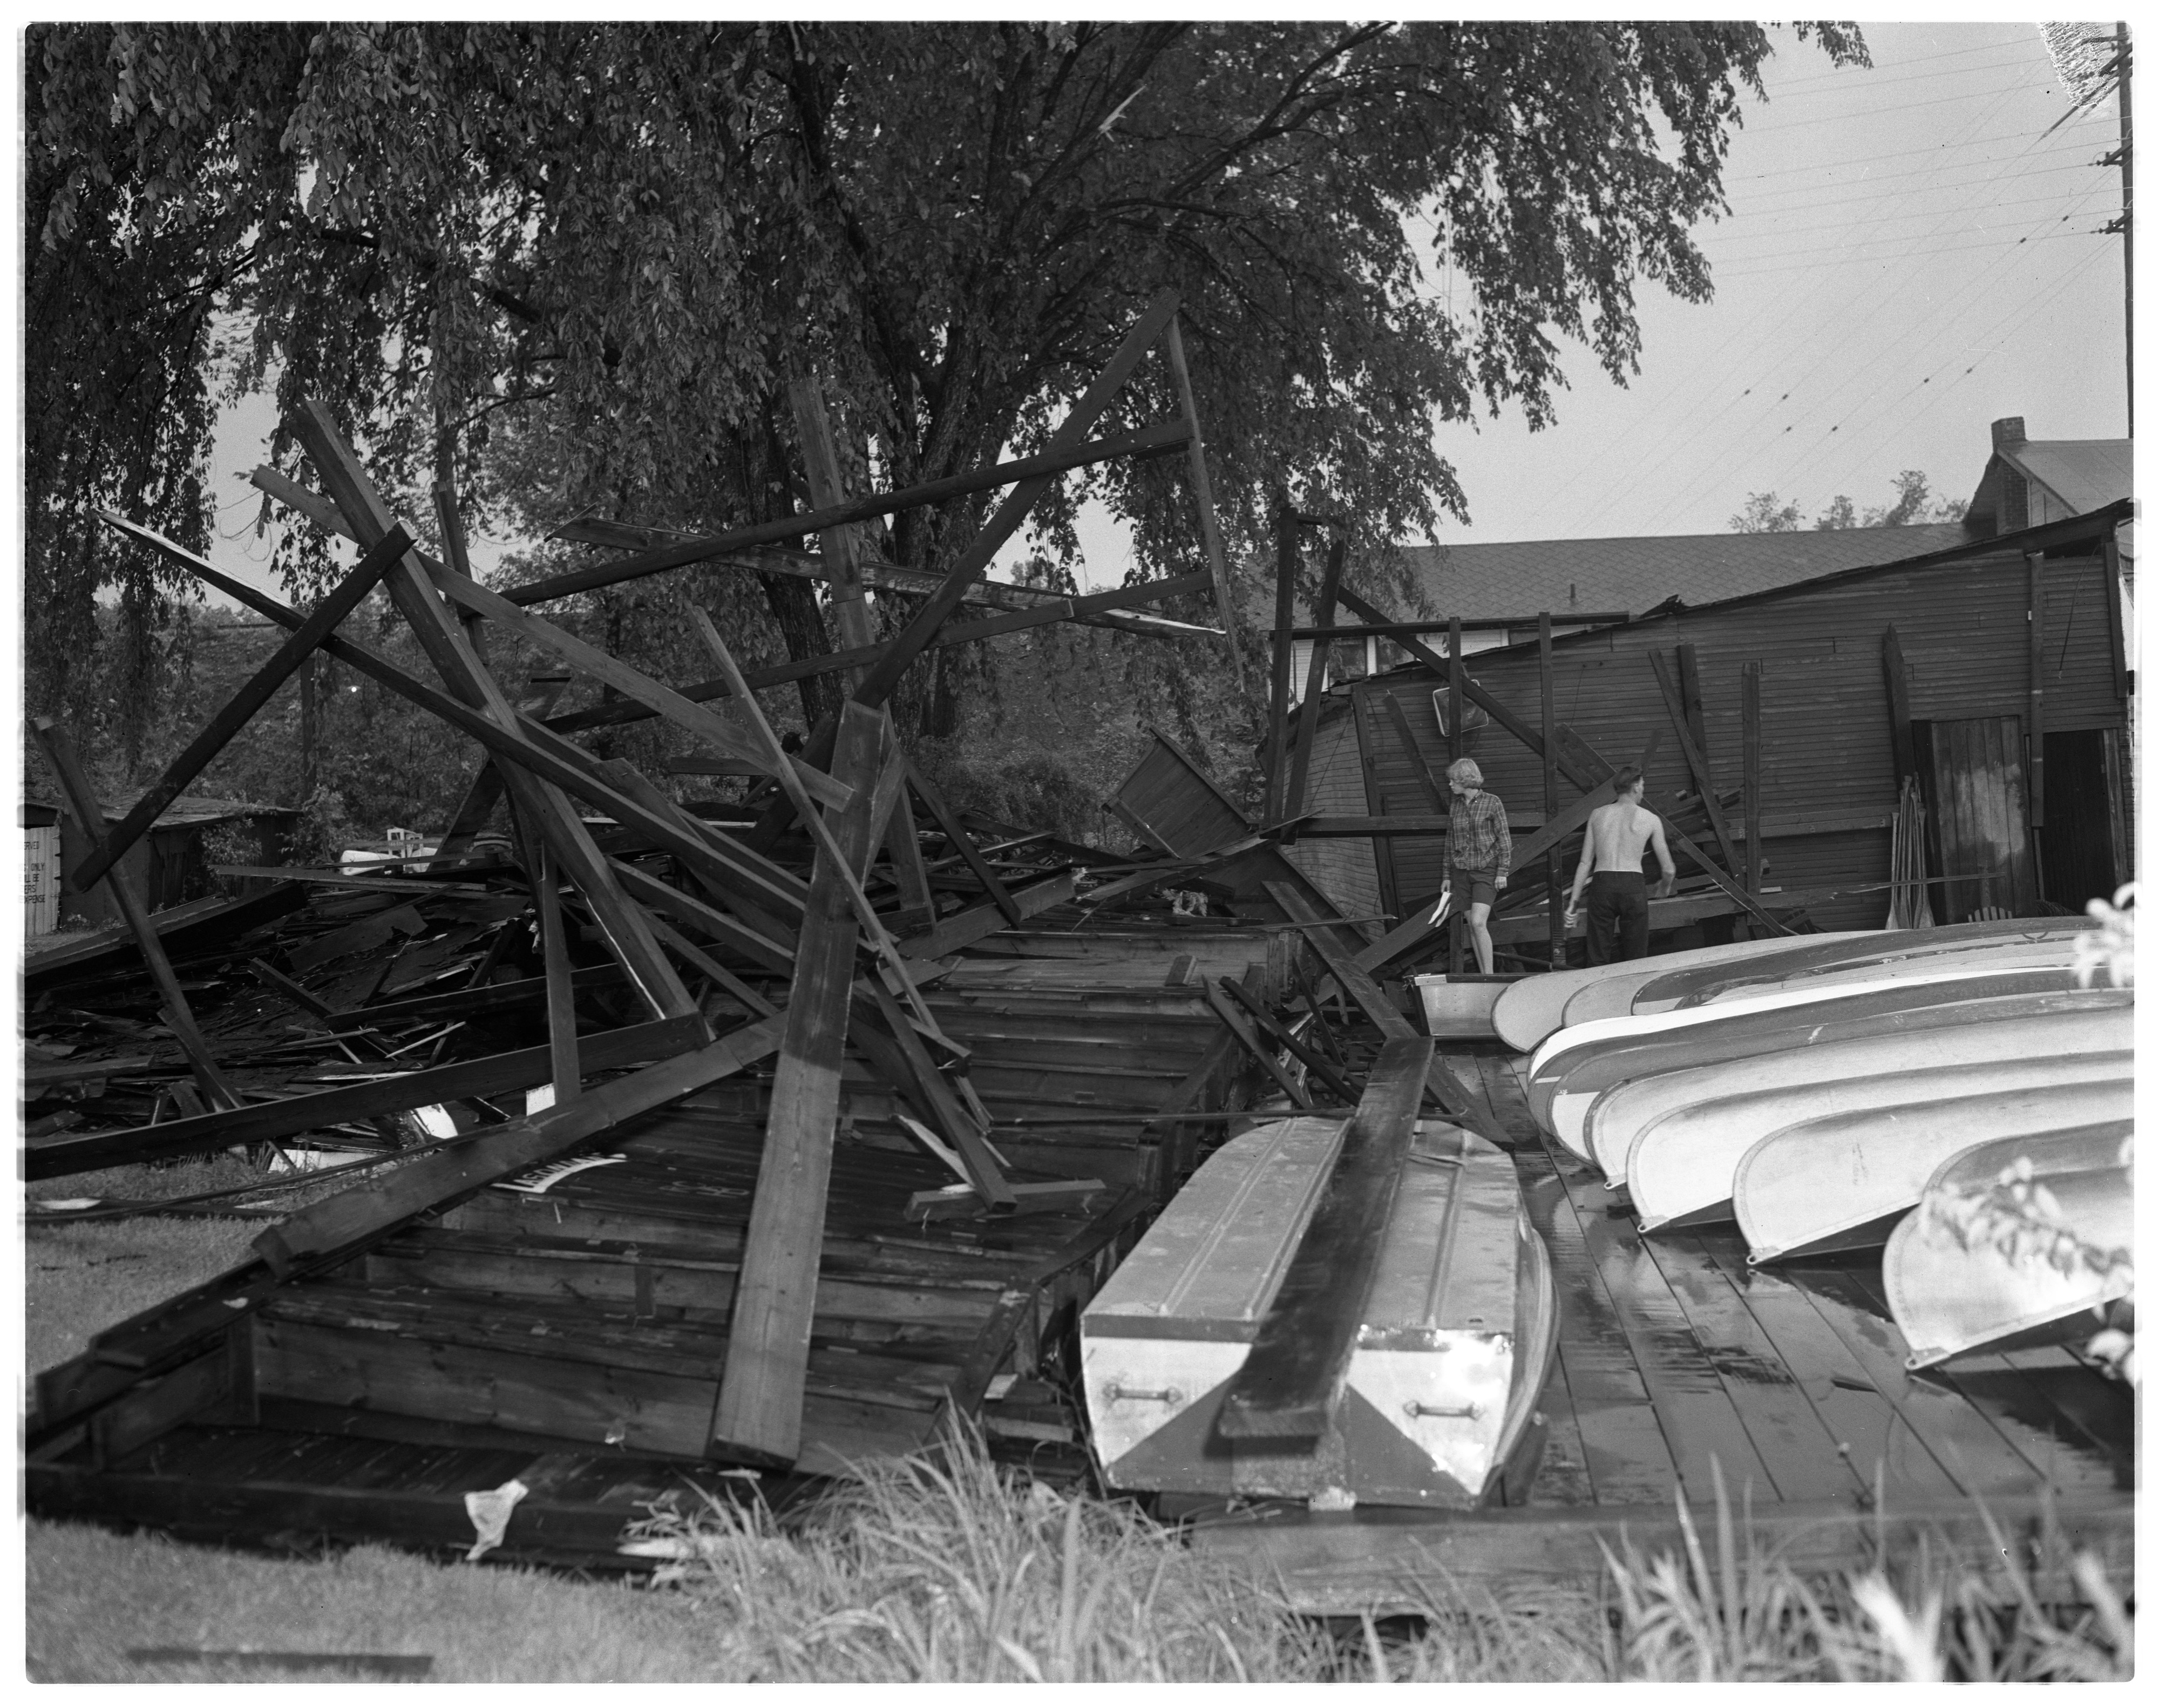 Storm Damage At Wirth's Canoe Livery, June 1964 image